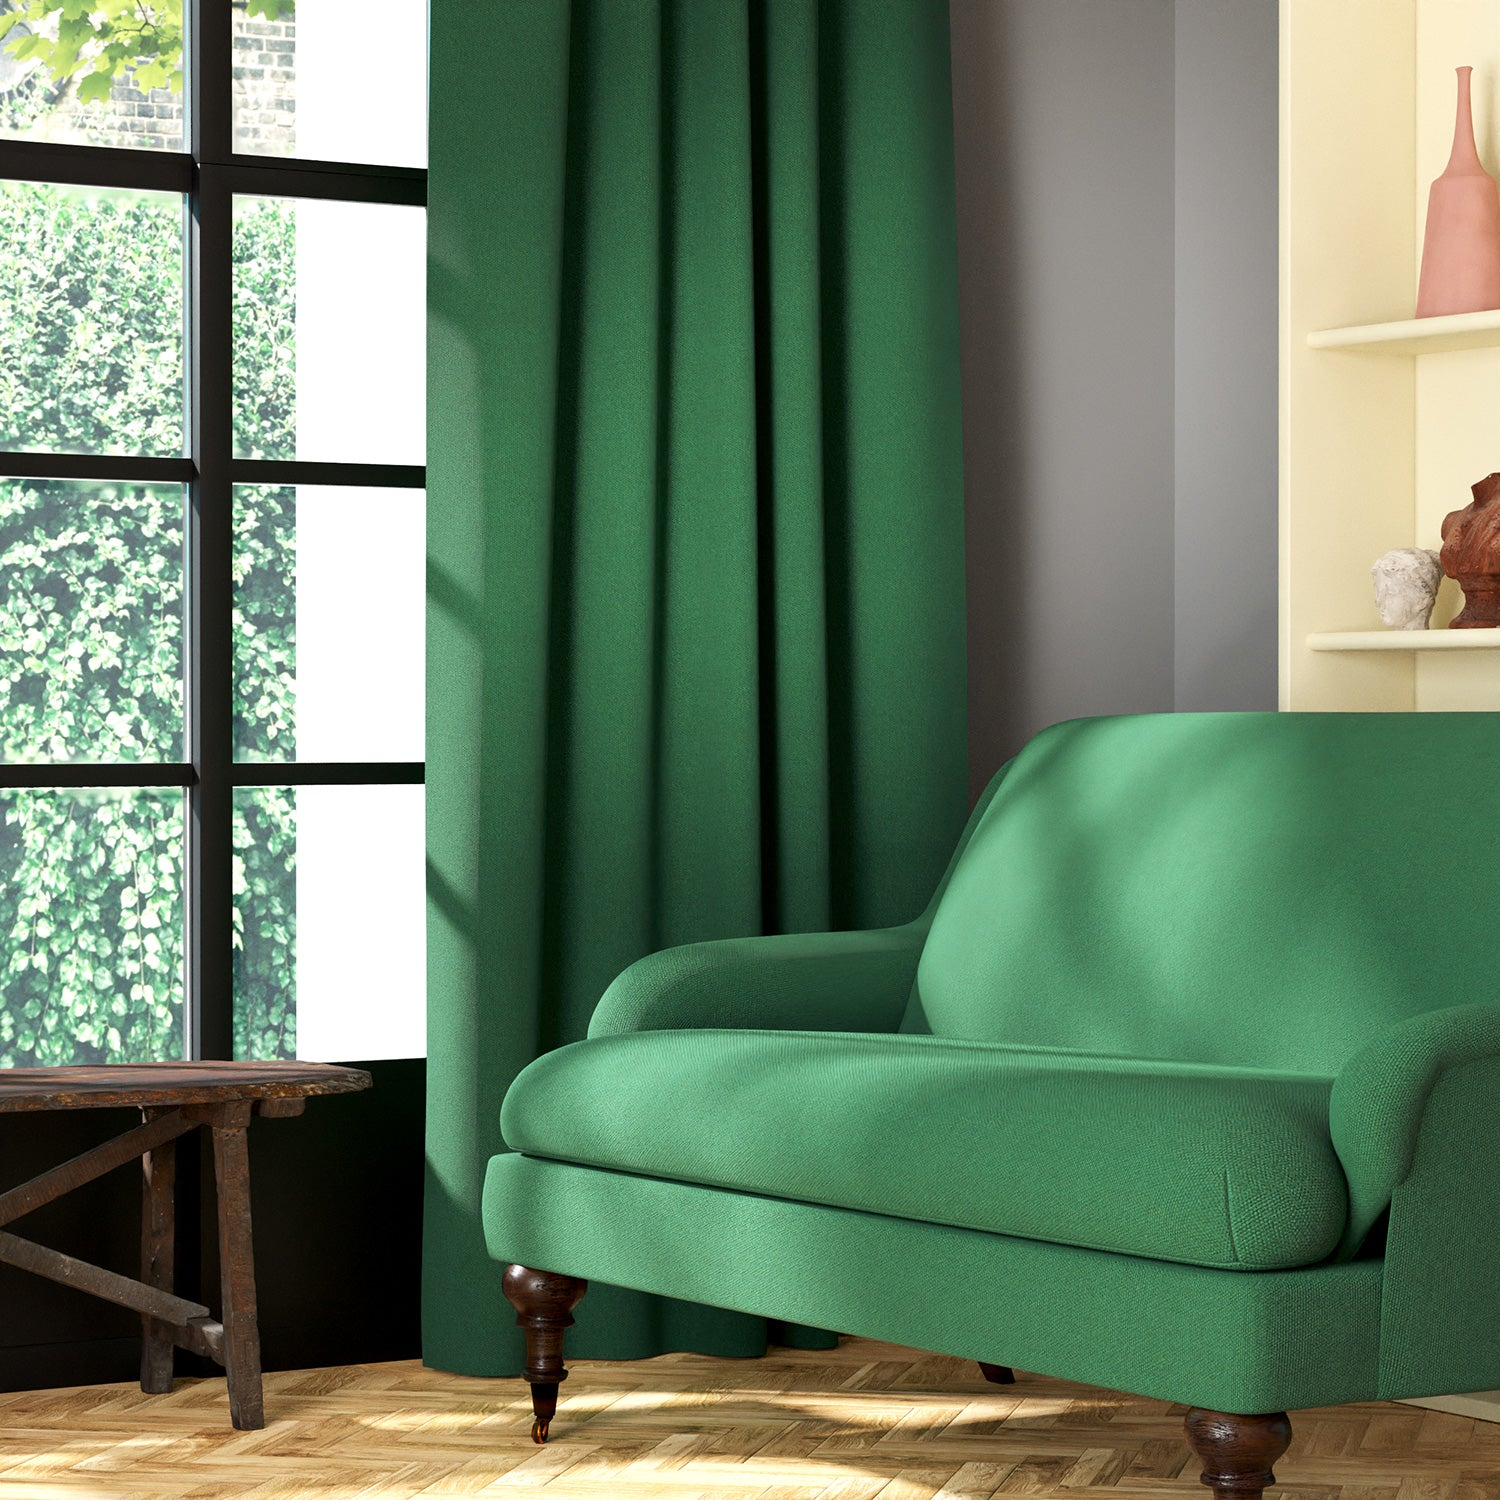 Living room featuring a sofa and curtains in a plain emerald green eco-friendly fabric